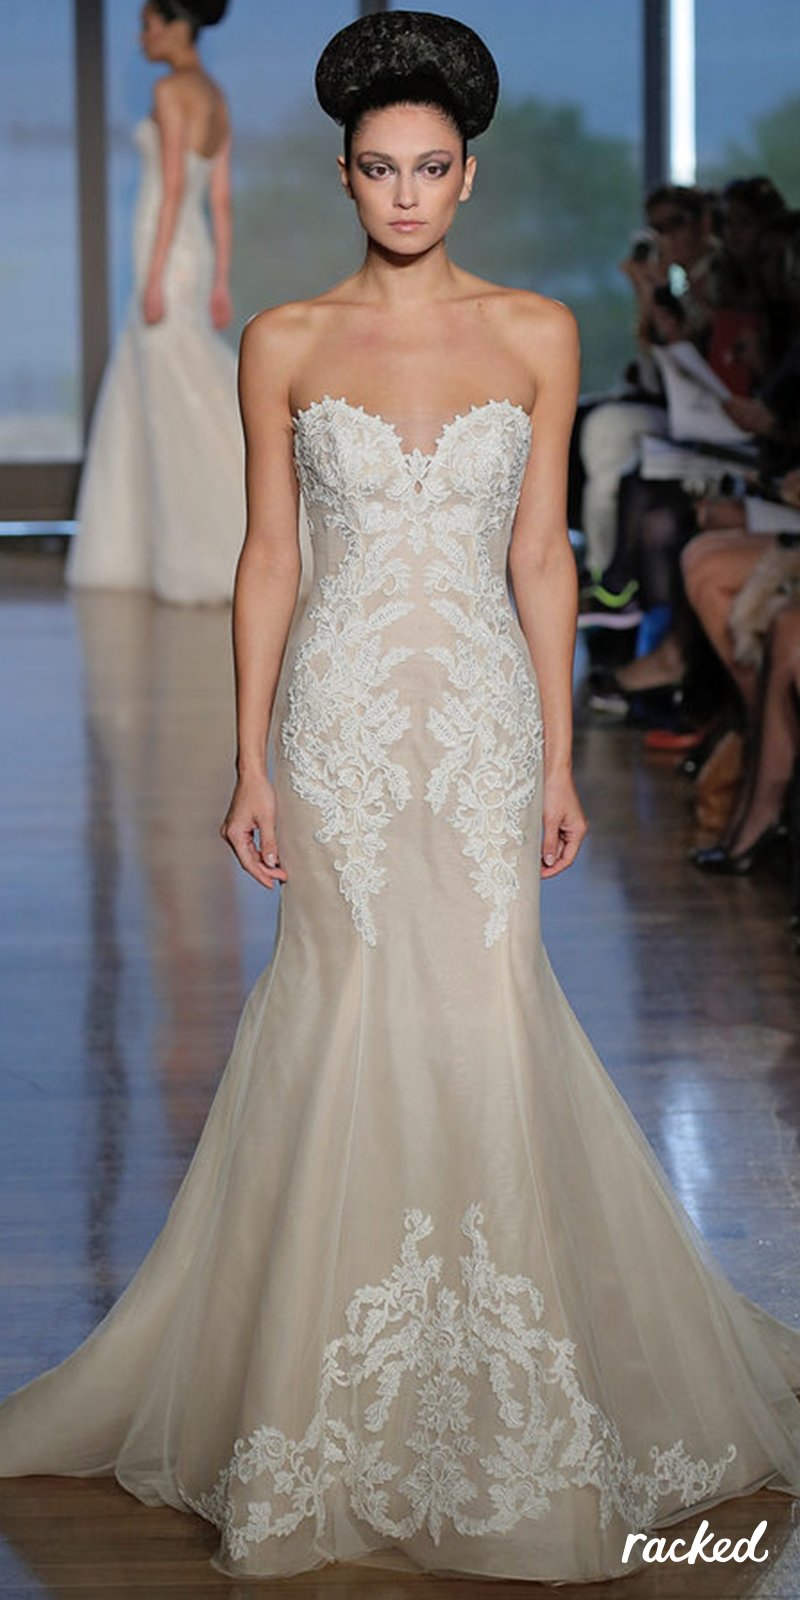 88882d4065627 Wedding Dress Inspiration  Flirty Mermaid-Style Gown With Lace Detail     More Ethereal